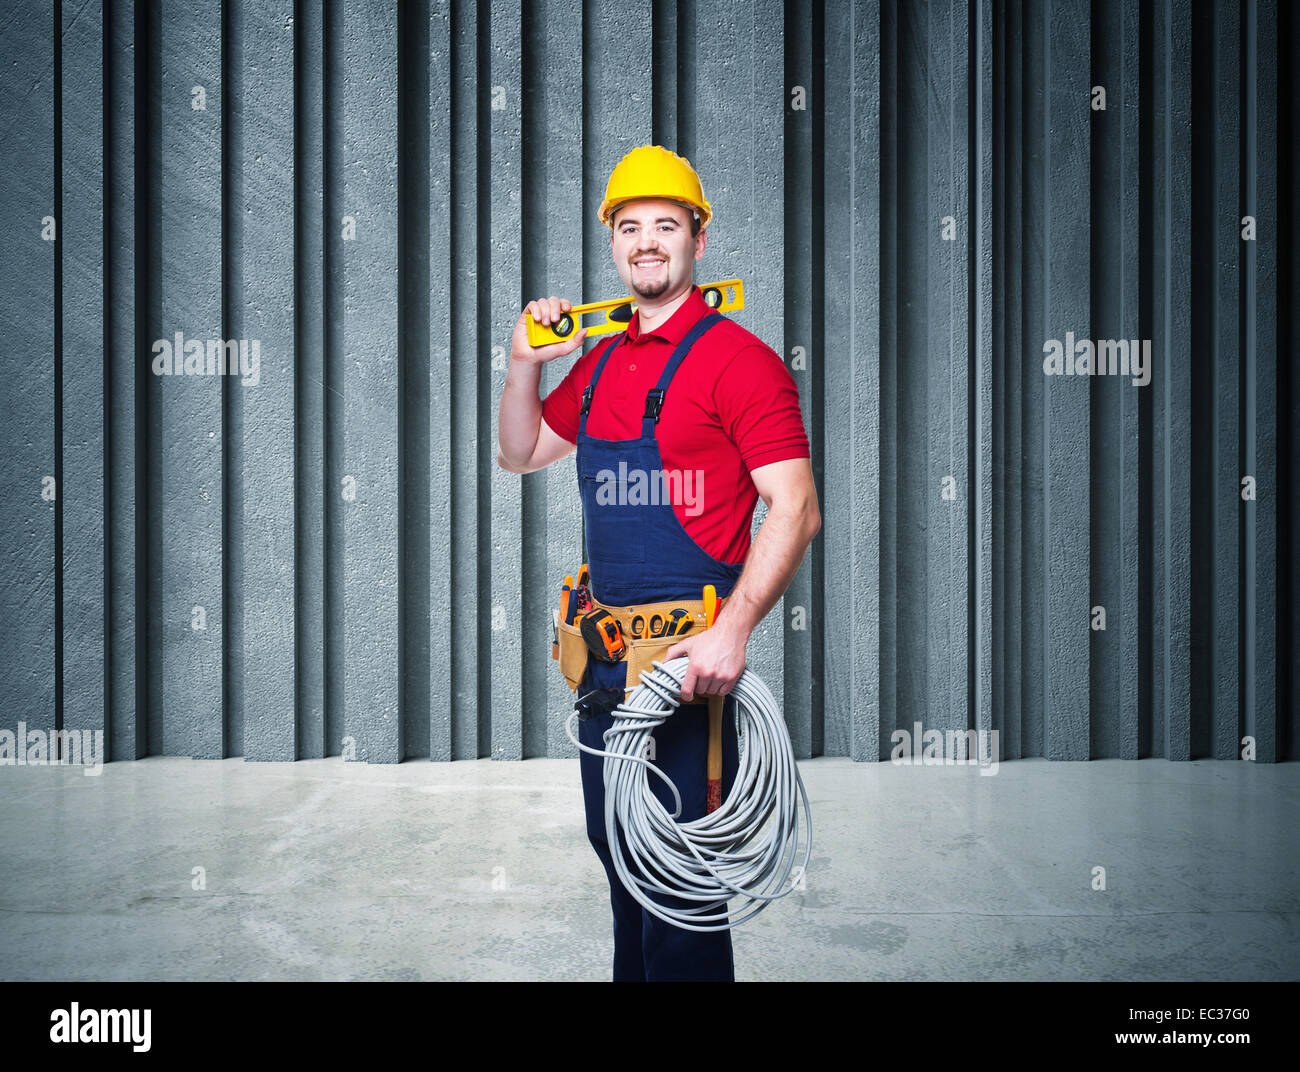 man at work and 3d abstract background - Stock Image